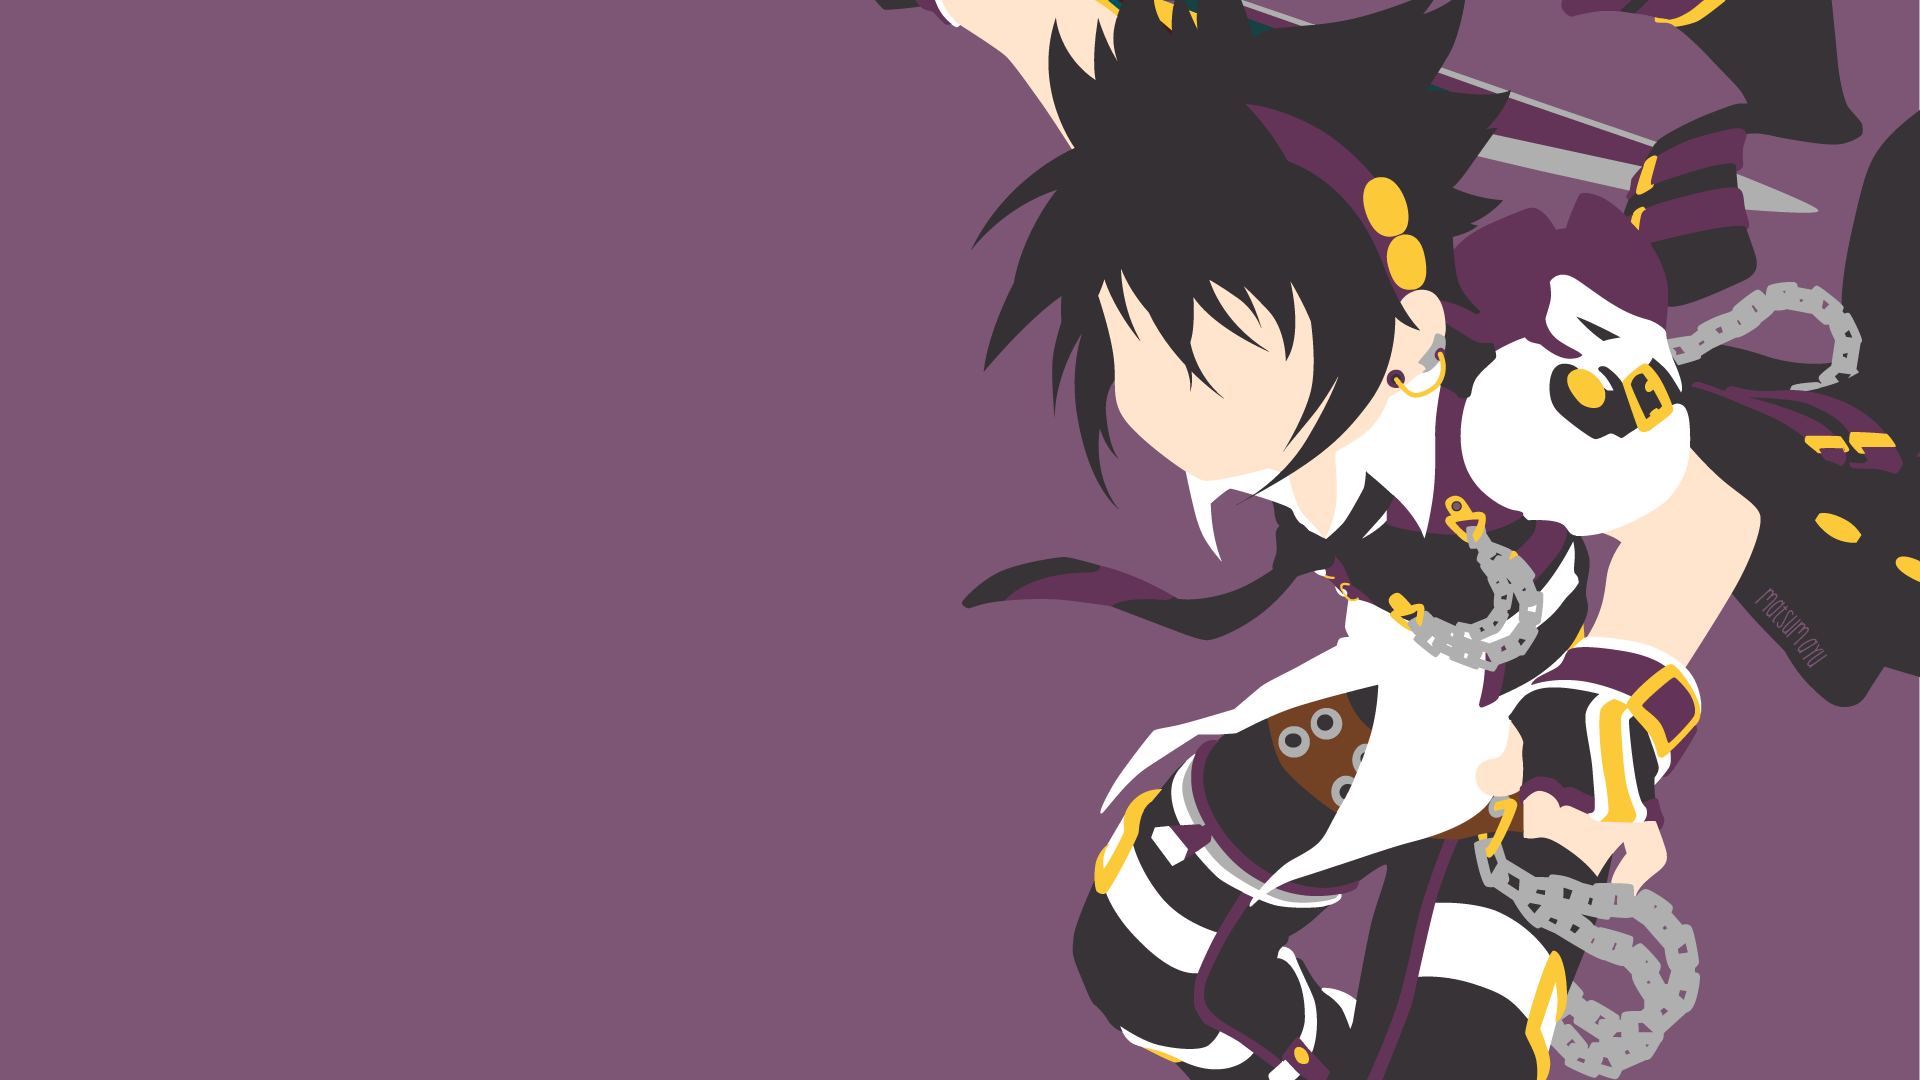 Grand Chase HD Wallpaper | Background Image | 1920x1080 | ID